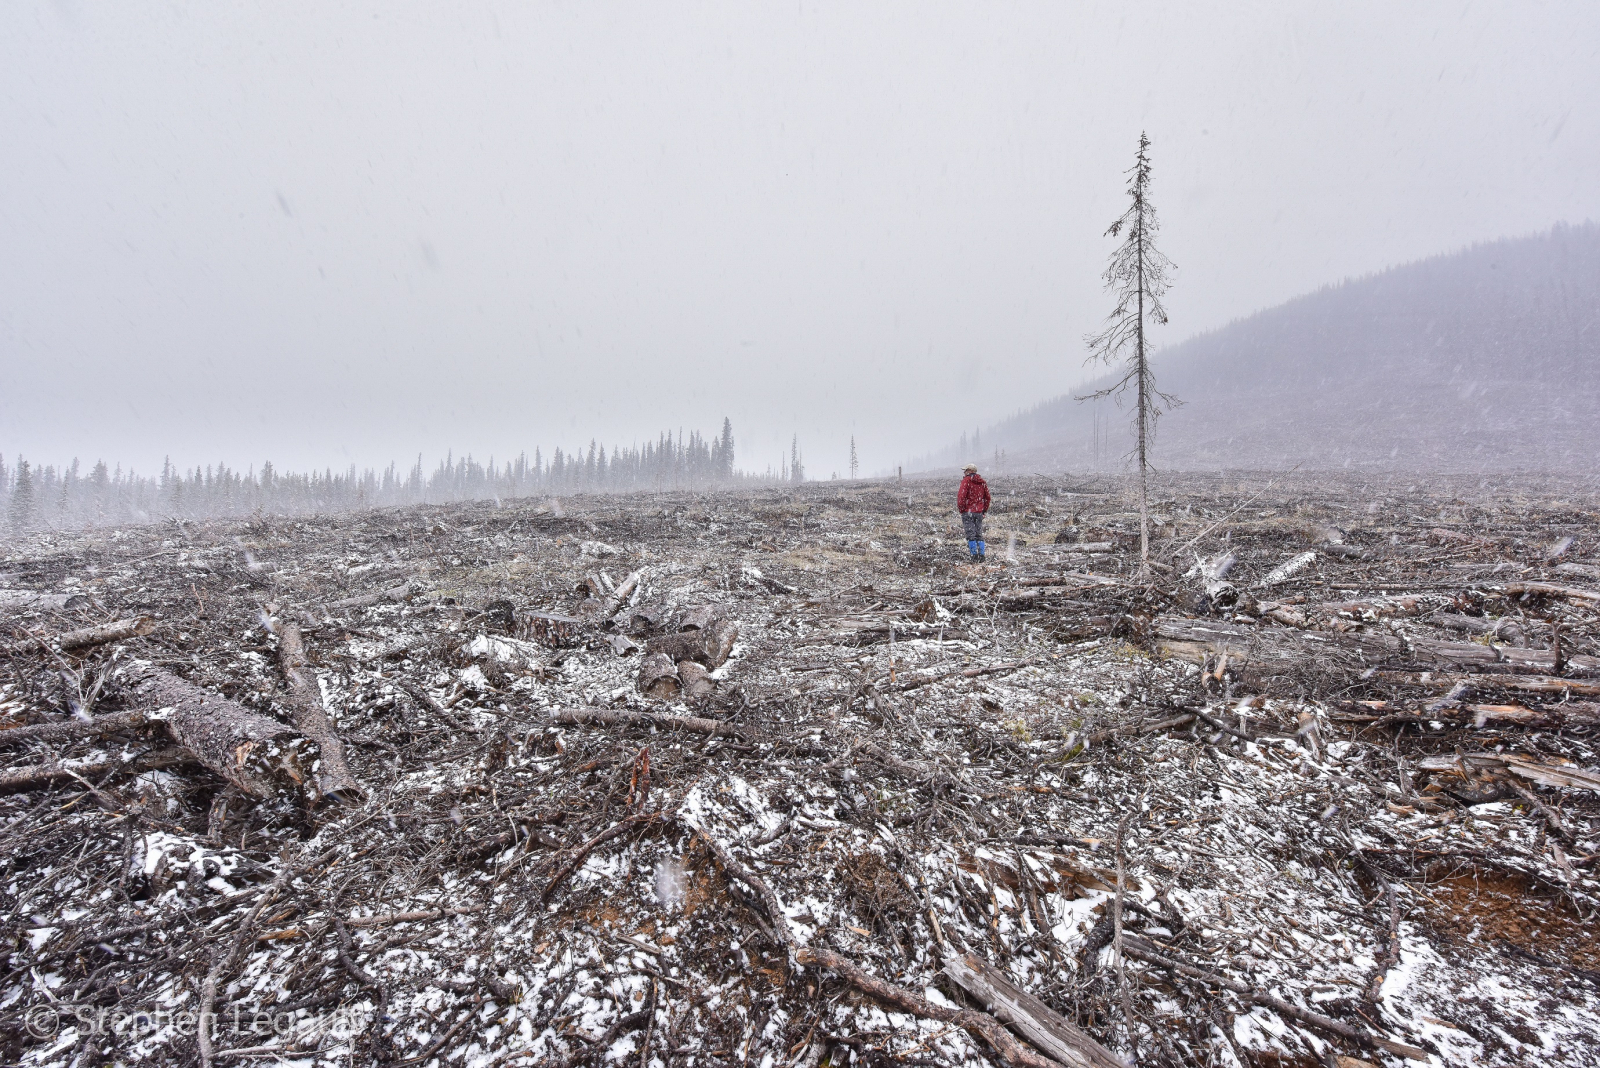 A clear cut in the Cataract Creek drainage of the Highwood River below Plateau Mountain Ecological Reserve. Photo provided by Stephen Legault